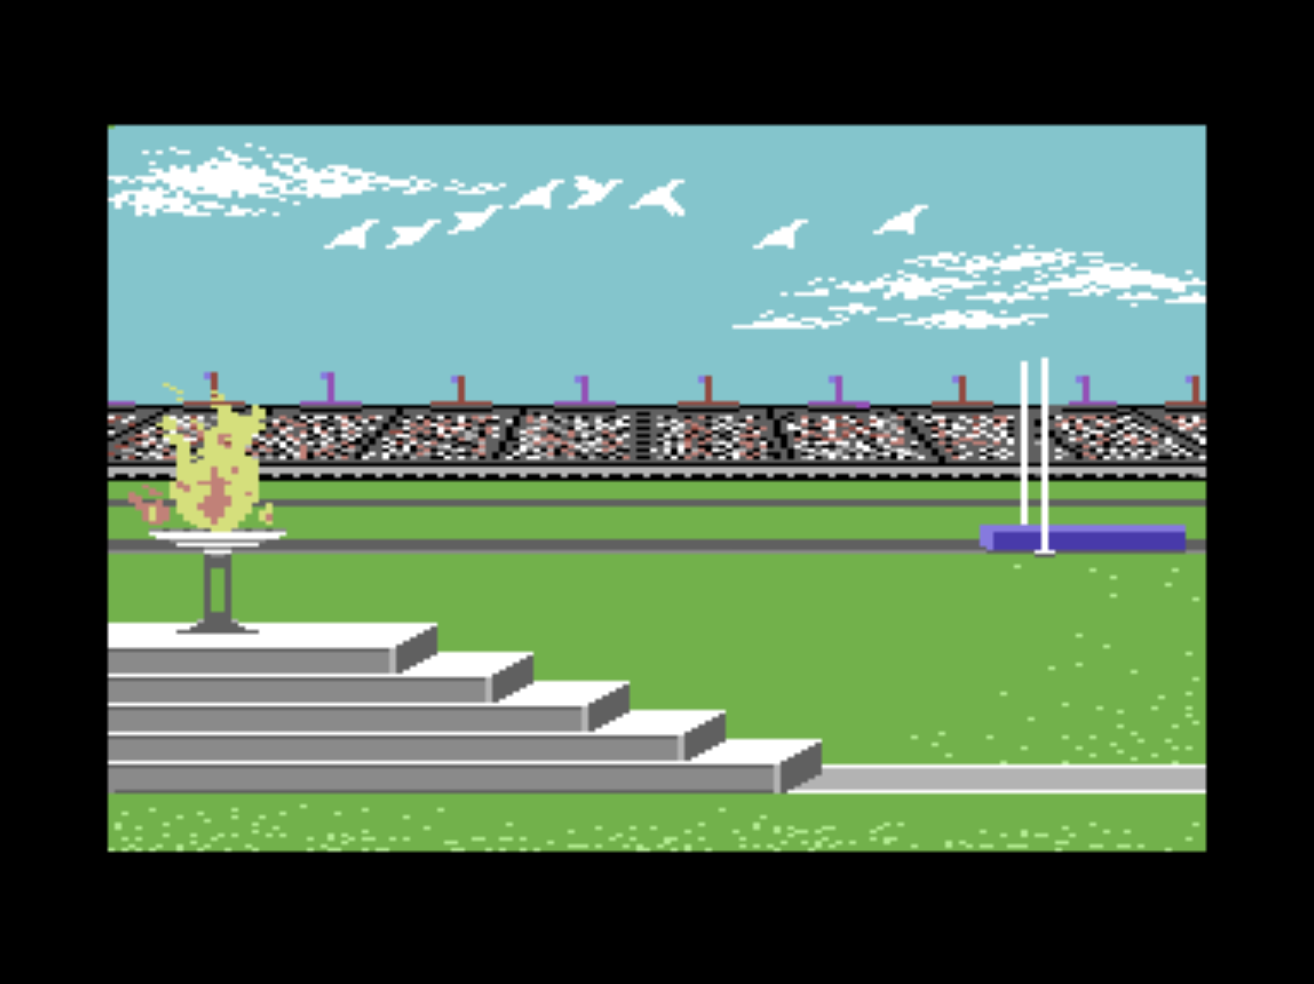 Snap from Summer Games, a computer game for the C64 by Epyx 1984